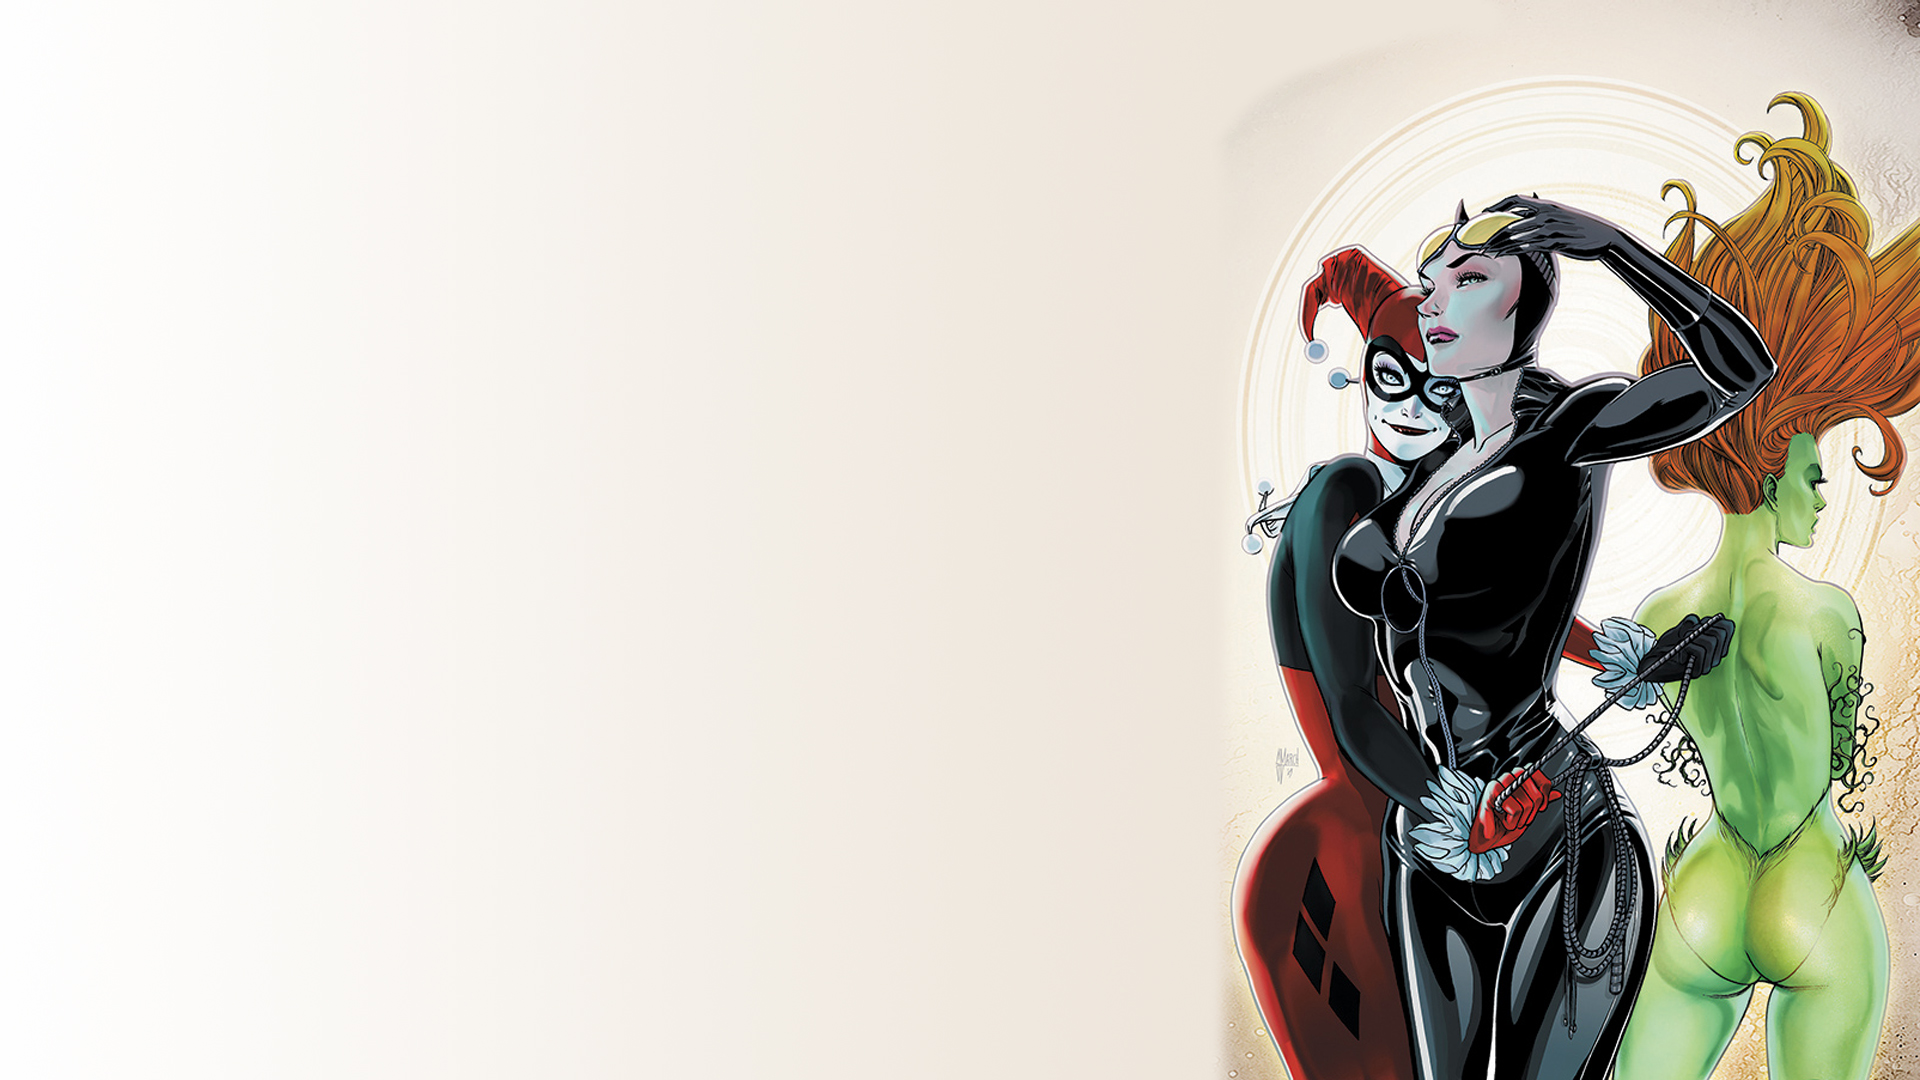 catwoman harley quinn poison ivy wallpaper resolution 1920x1080 id 899996 wallha com catwoman harley quinn poison ivy